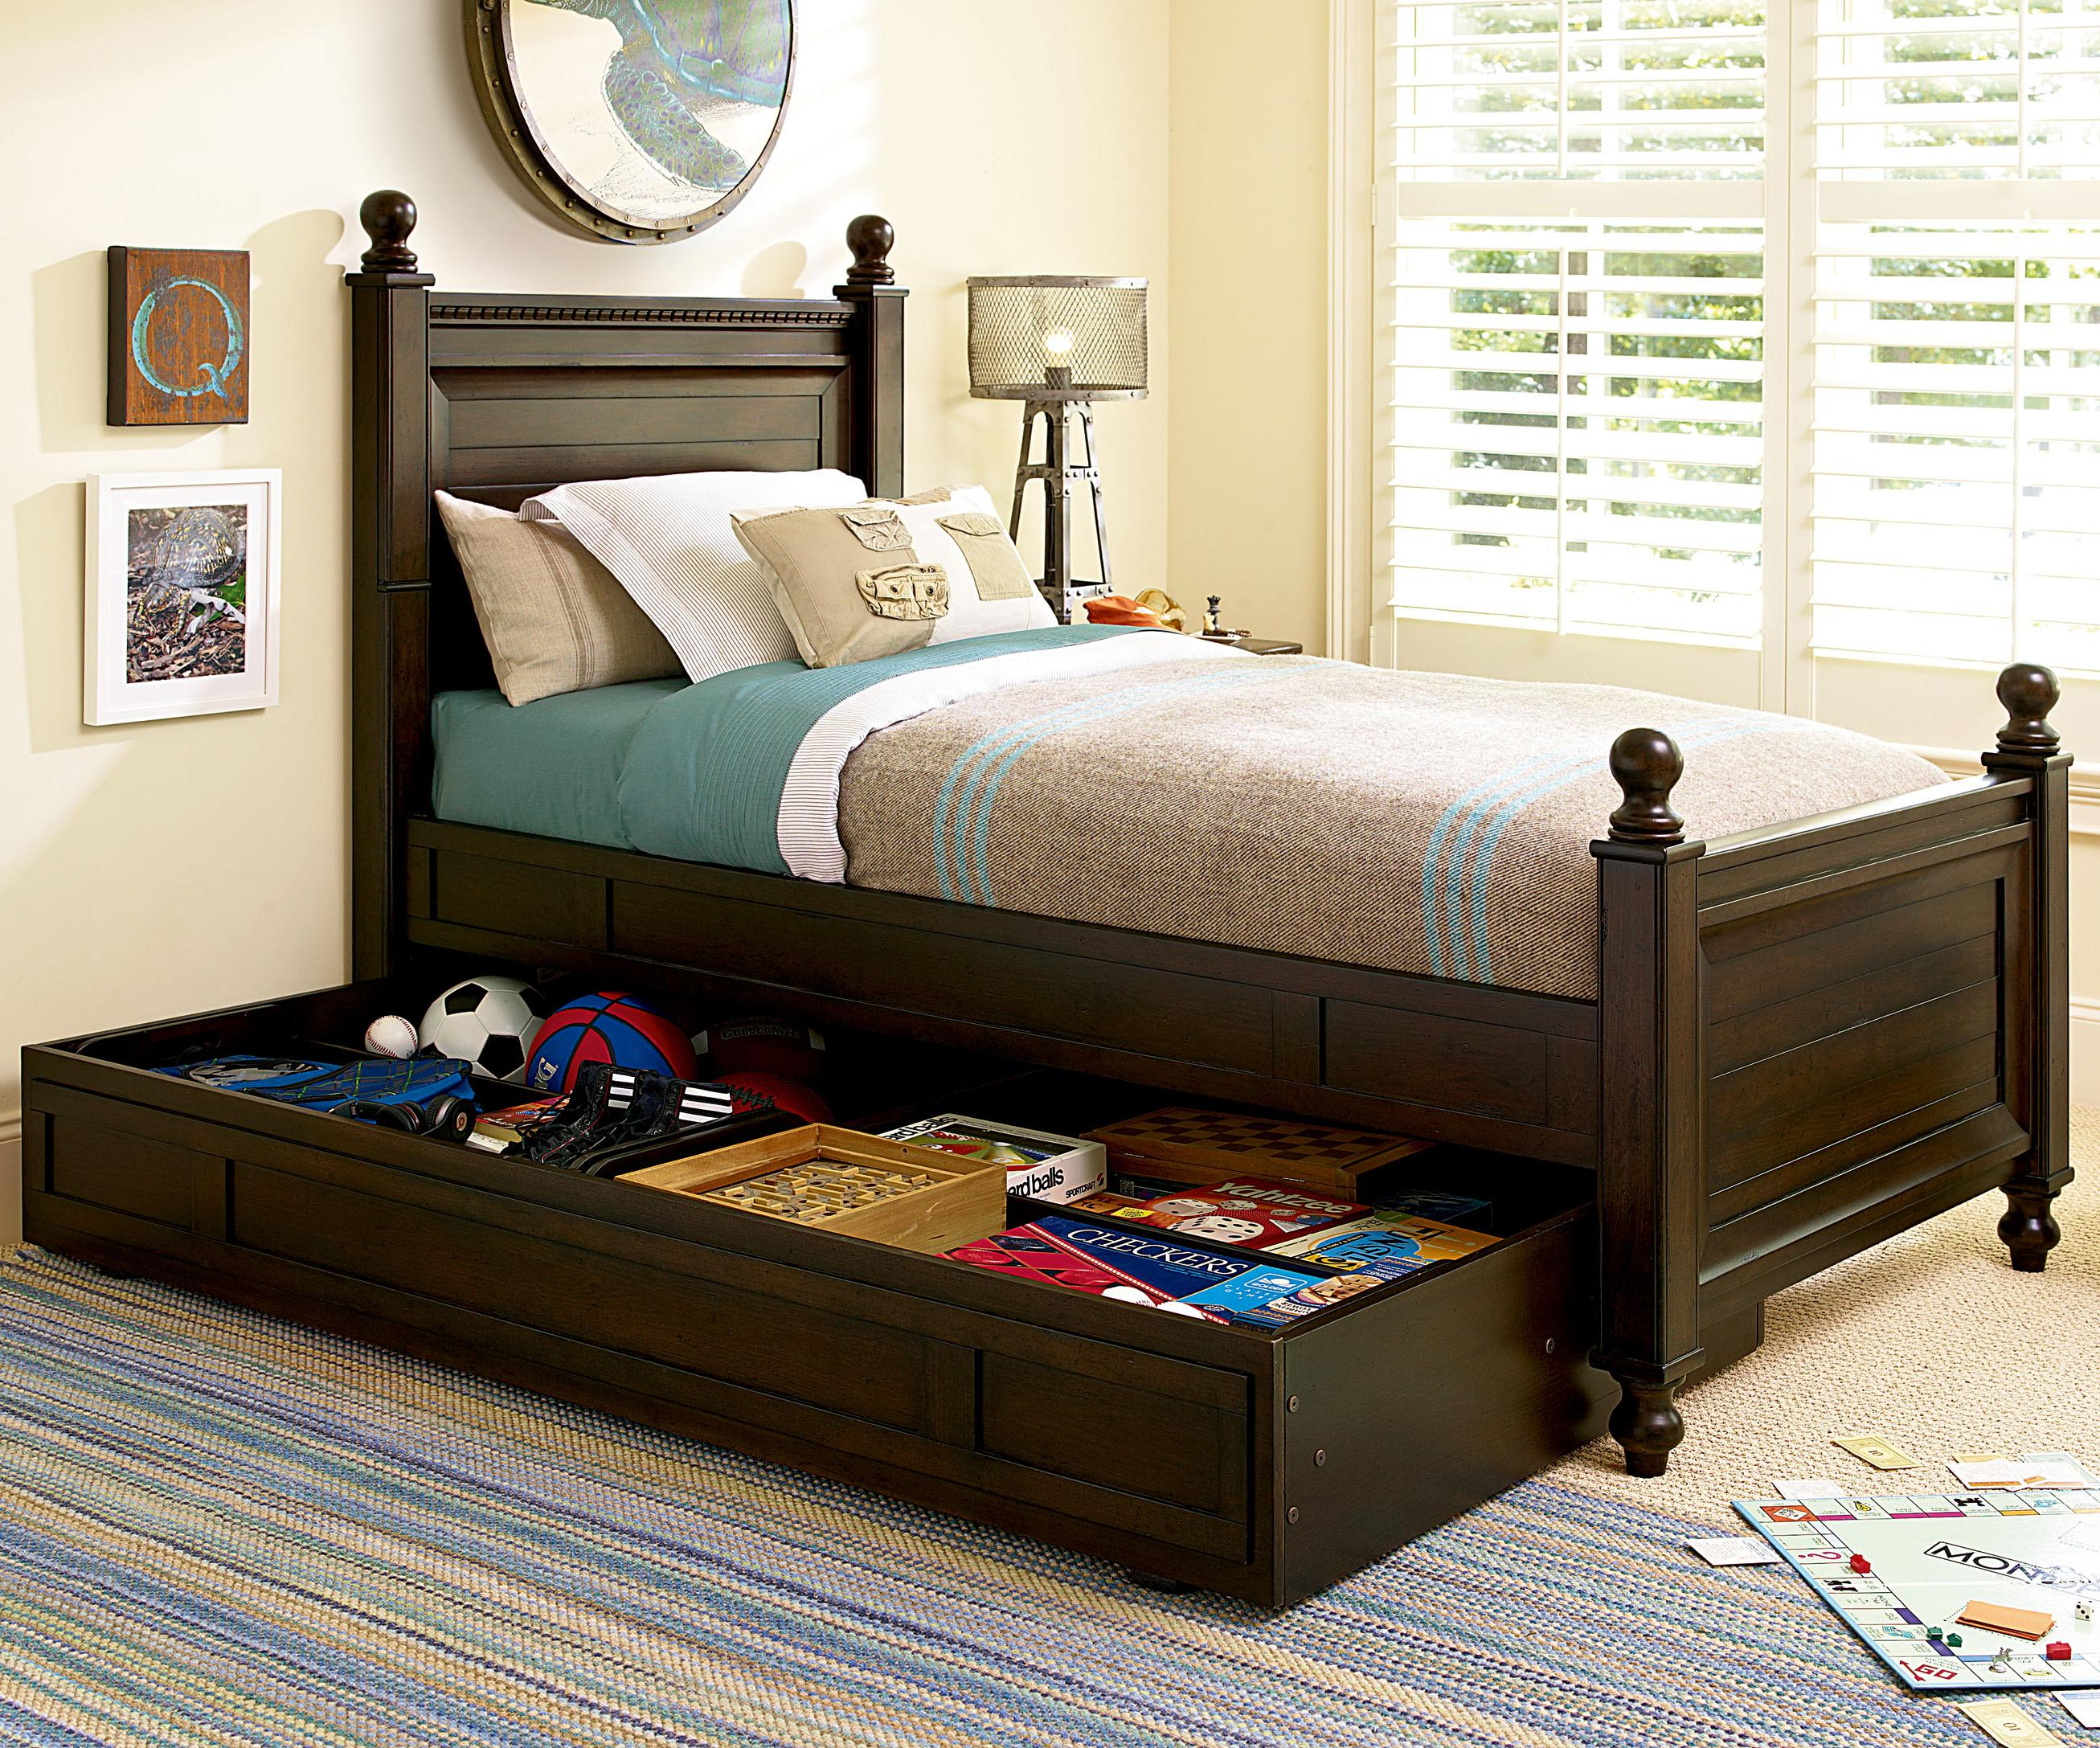 Paula Deen Bedroom Furniture Collection Steel Magnolia Smartstuff By Universal Paula Deen Guys Twin Guys Reading Low